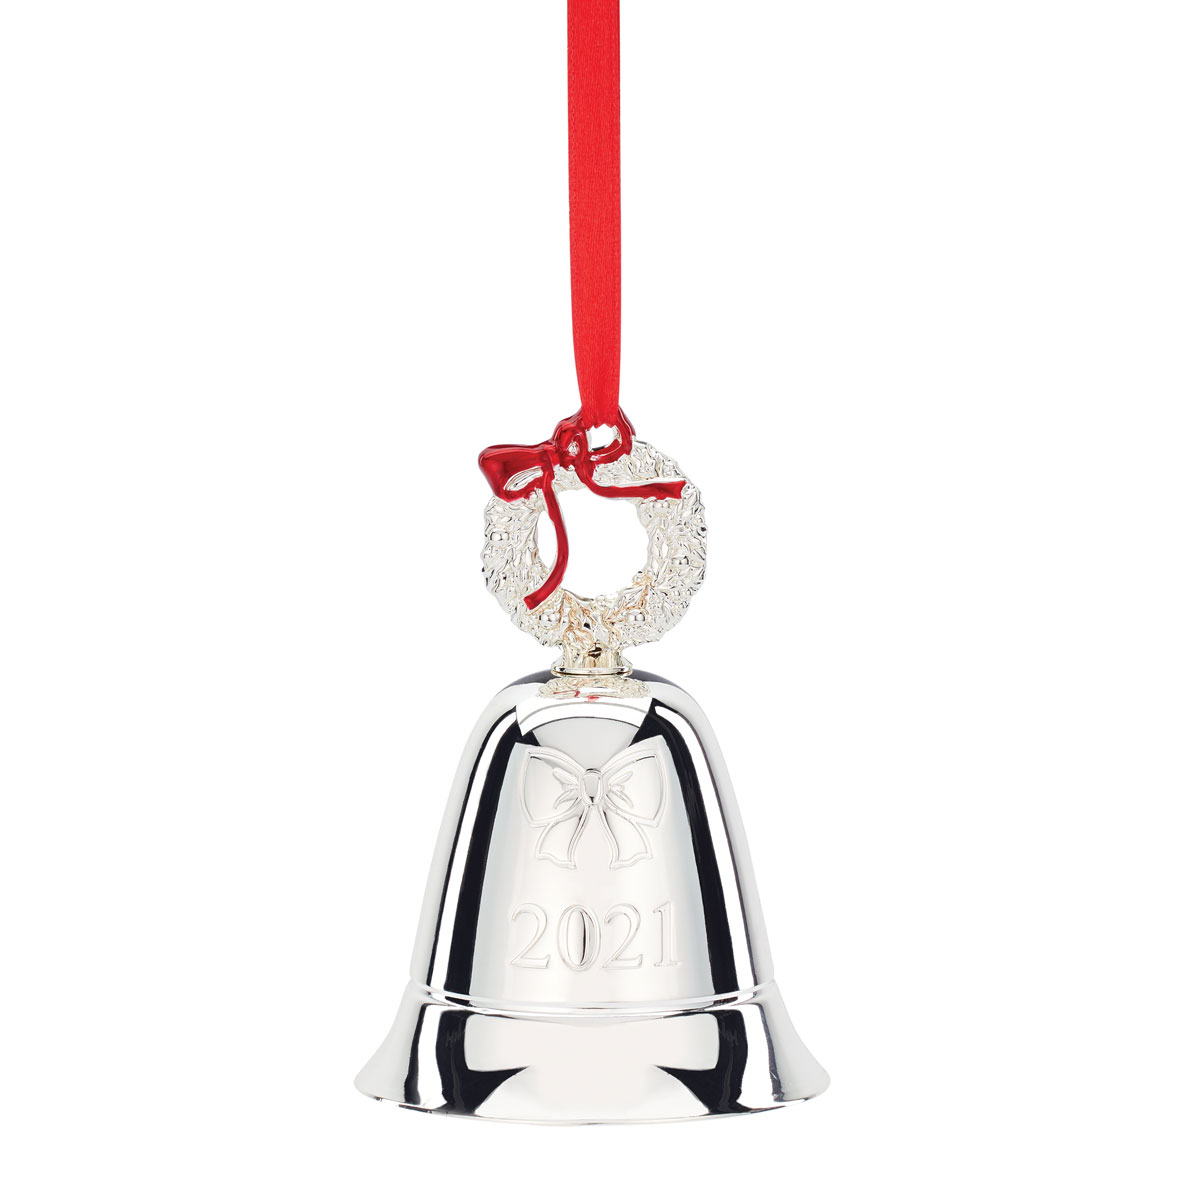 Lenox 2021 Annual Musical Bell Metal Ornament 45th in the Series